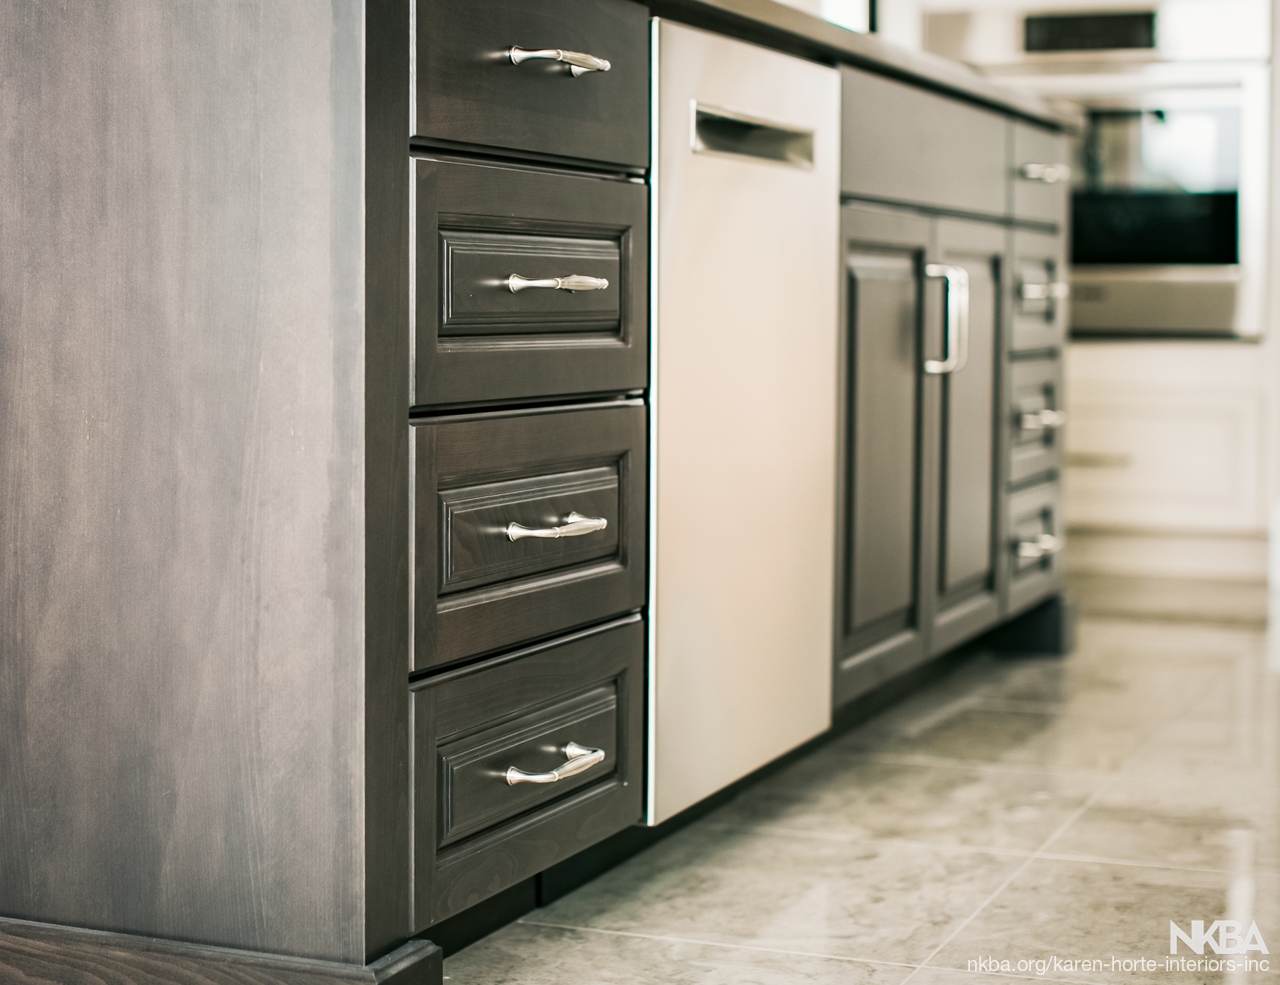 Raised Panel Drawer Fronts on Island - NKBA